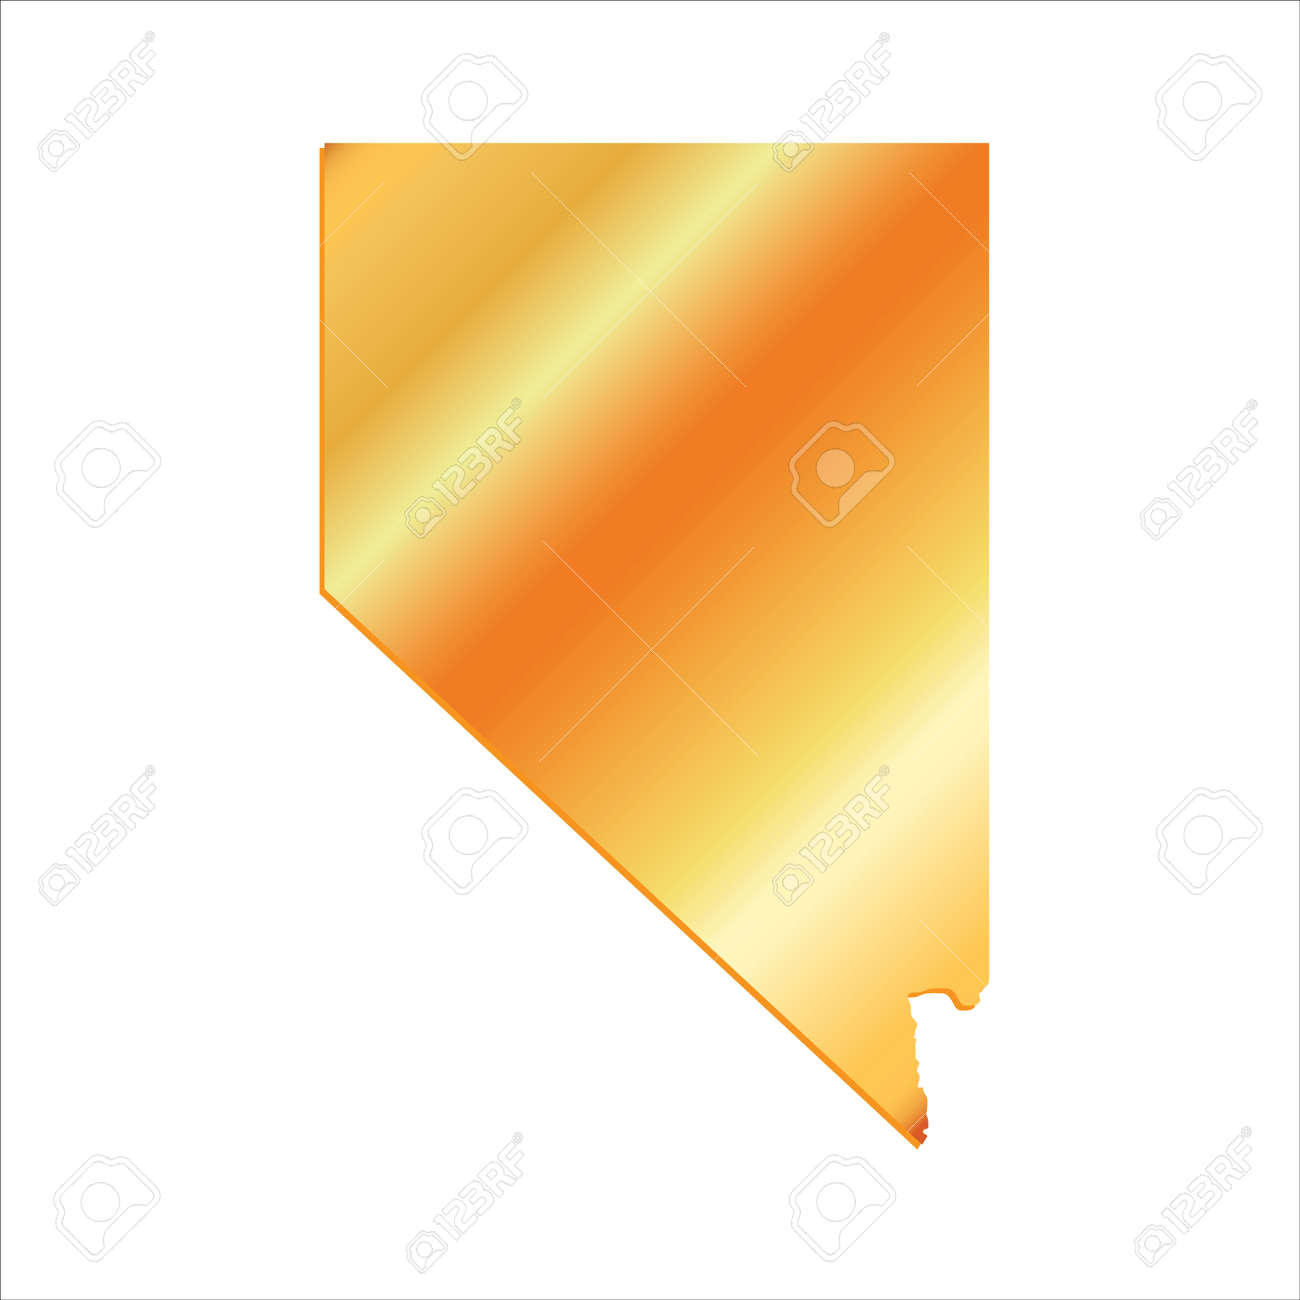 3d Nevada State Usa Gold Outline Map Royalty Free Cliparts Vectors And Stock Illustration Image 60194922